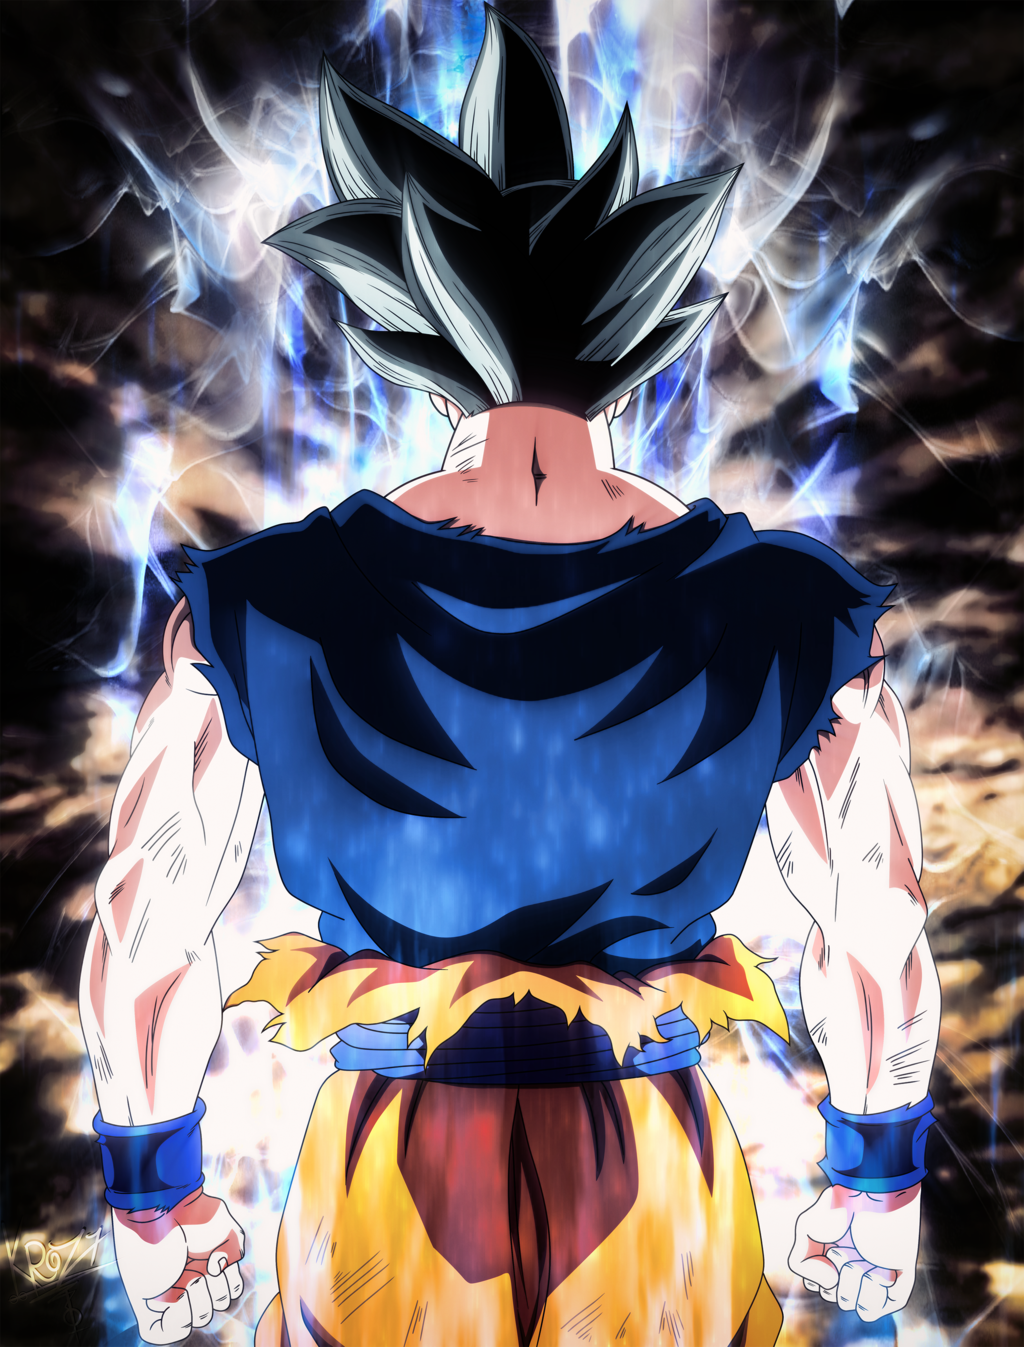 Ultra Instinct Goku Wallpaper 1920x1080 Posted By Sarah Peltier